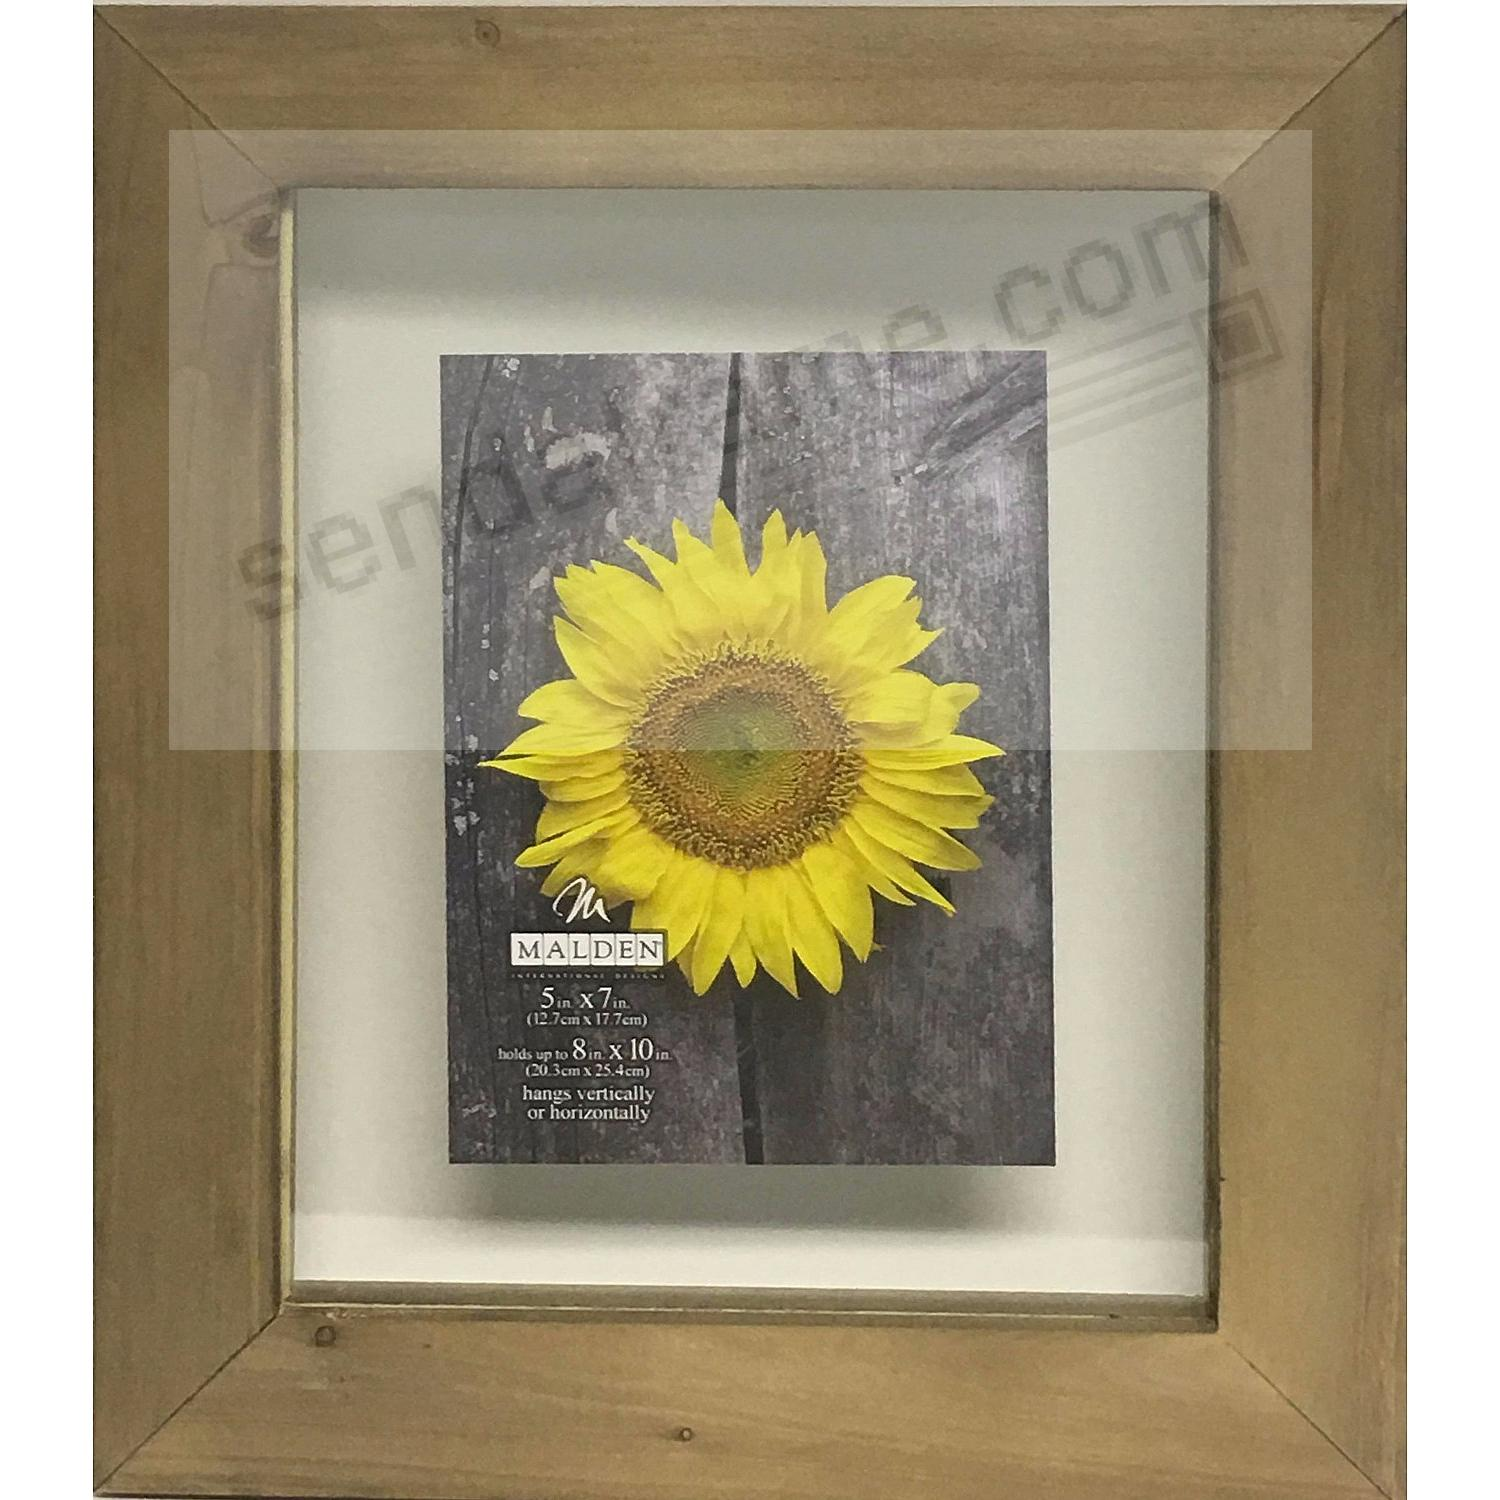 BARNWOOD DISTRESS FLOAT 8x10/5x7 frame by Malden®